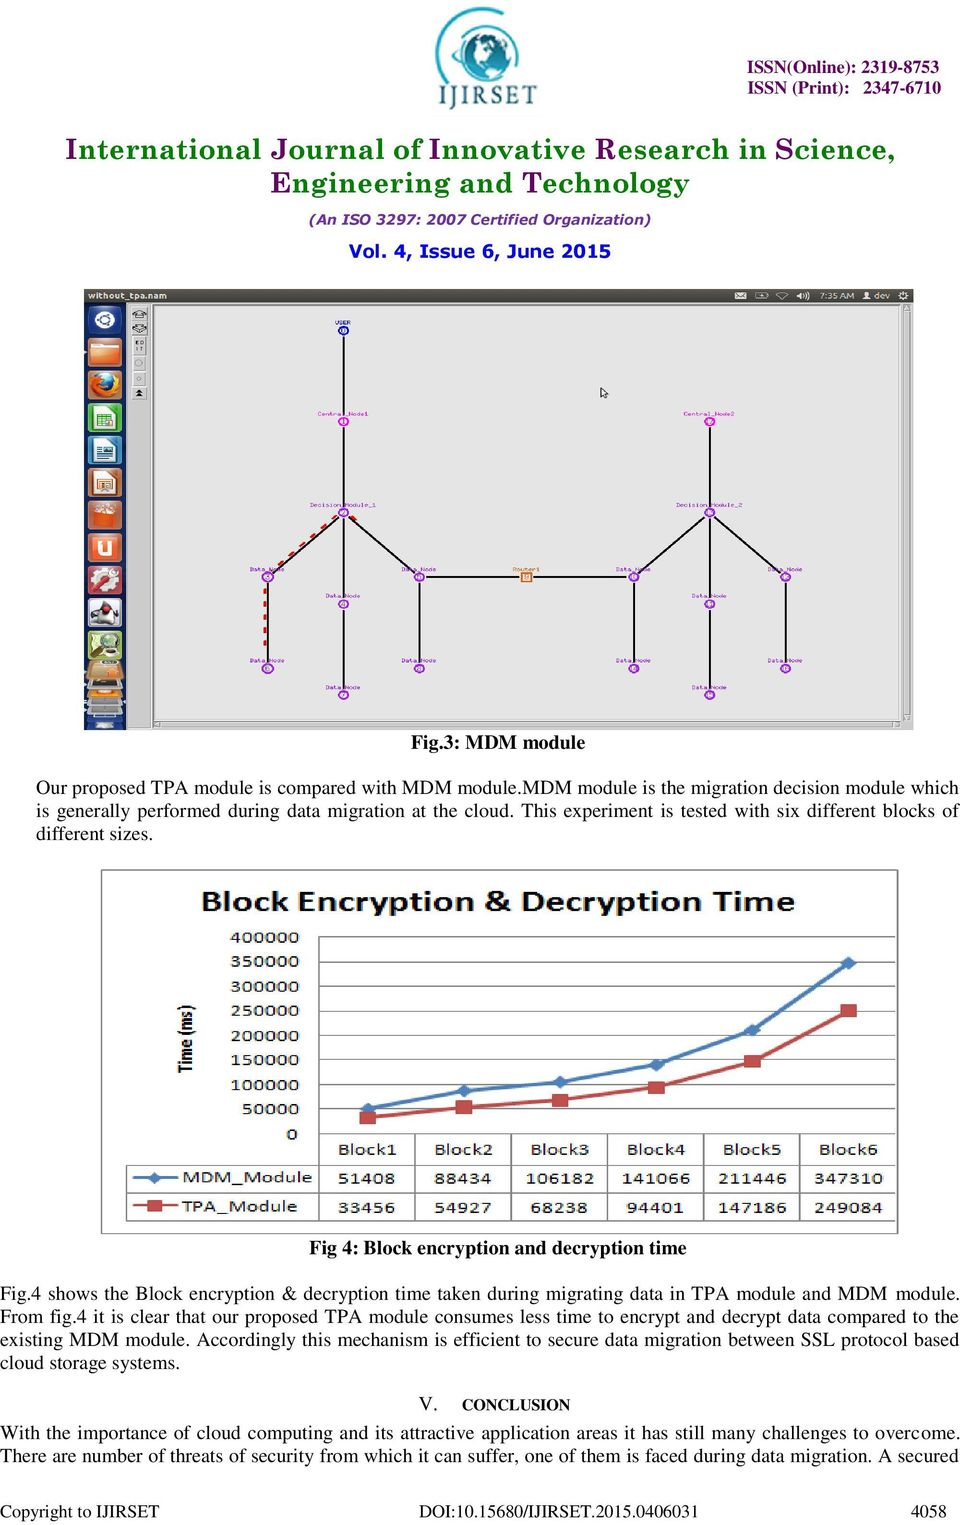 4 shows the Block encryption & decryption time taken during migrating data in TPA module and MDM module. From fig.